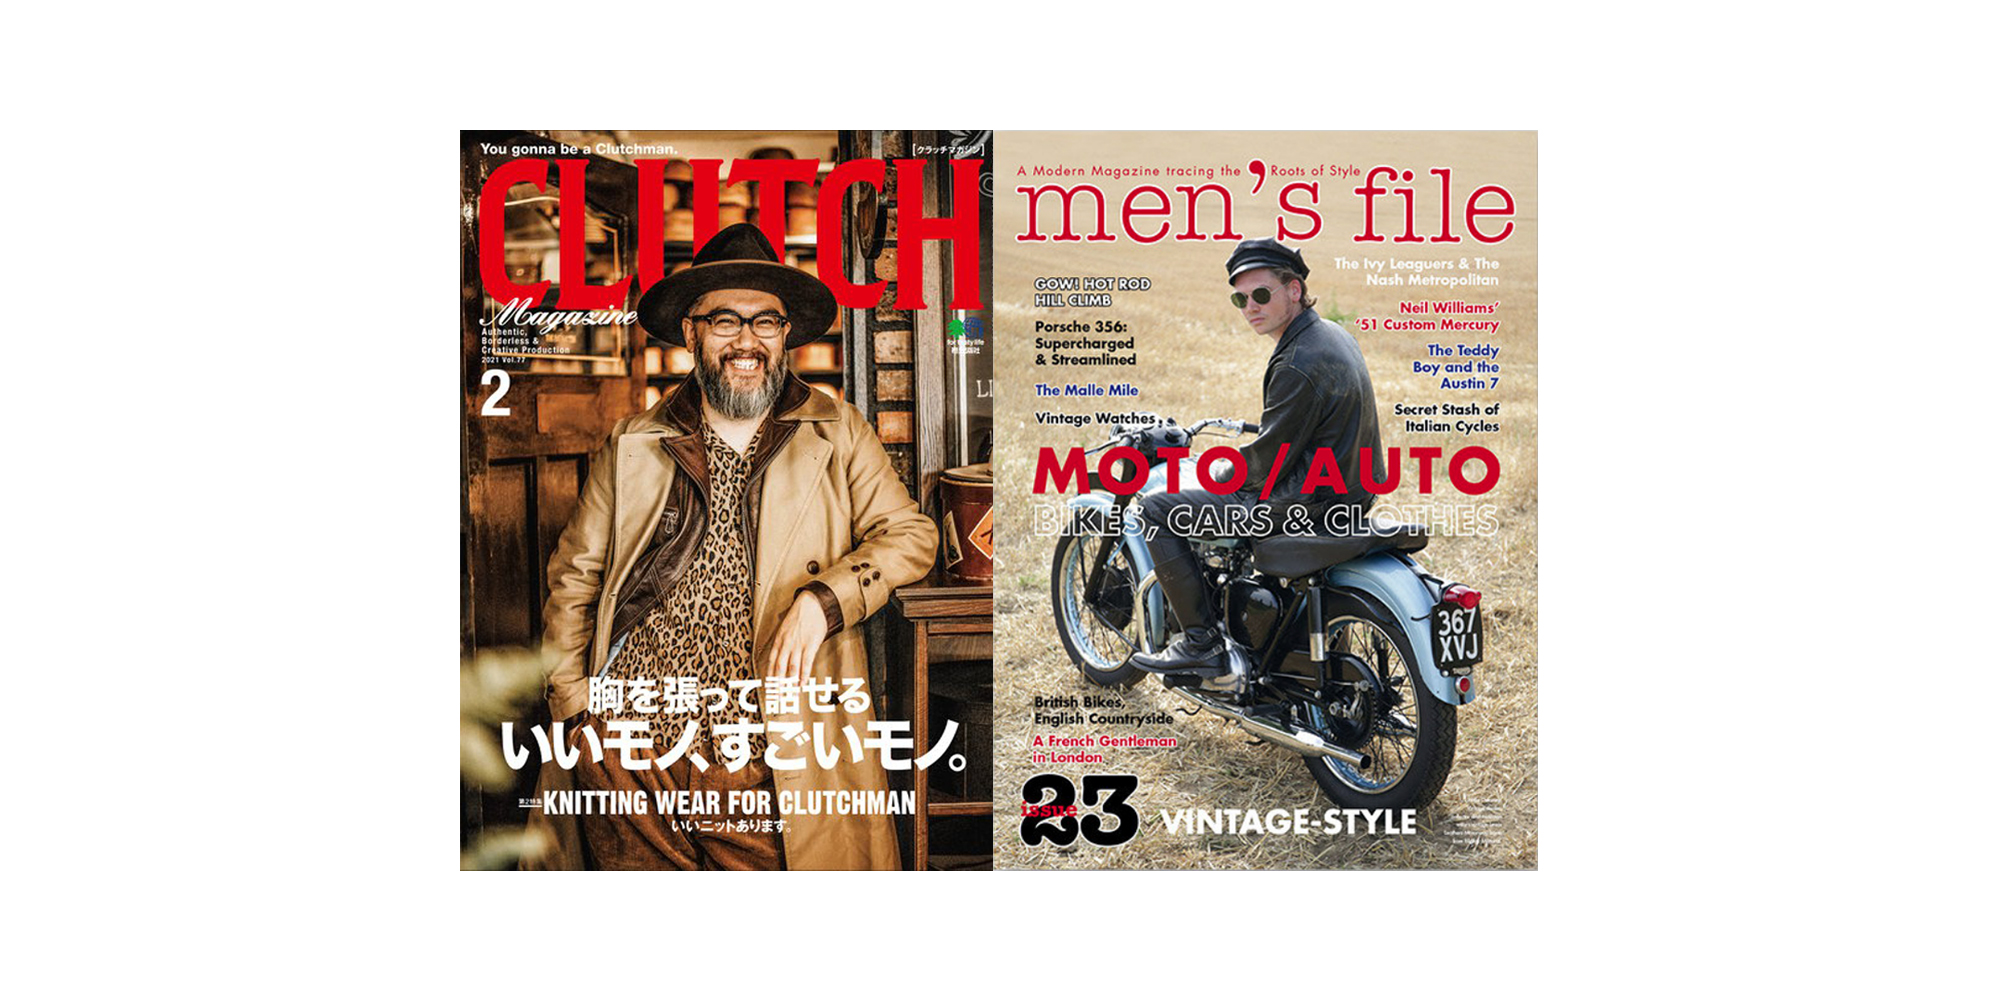 【CLUTCH Magazine Vol.77 & men's file issue 23】